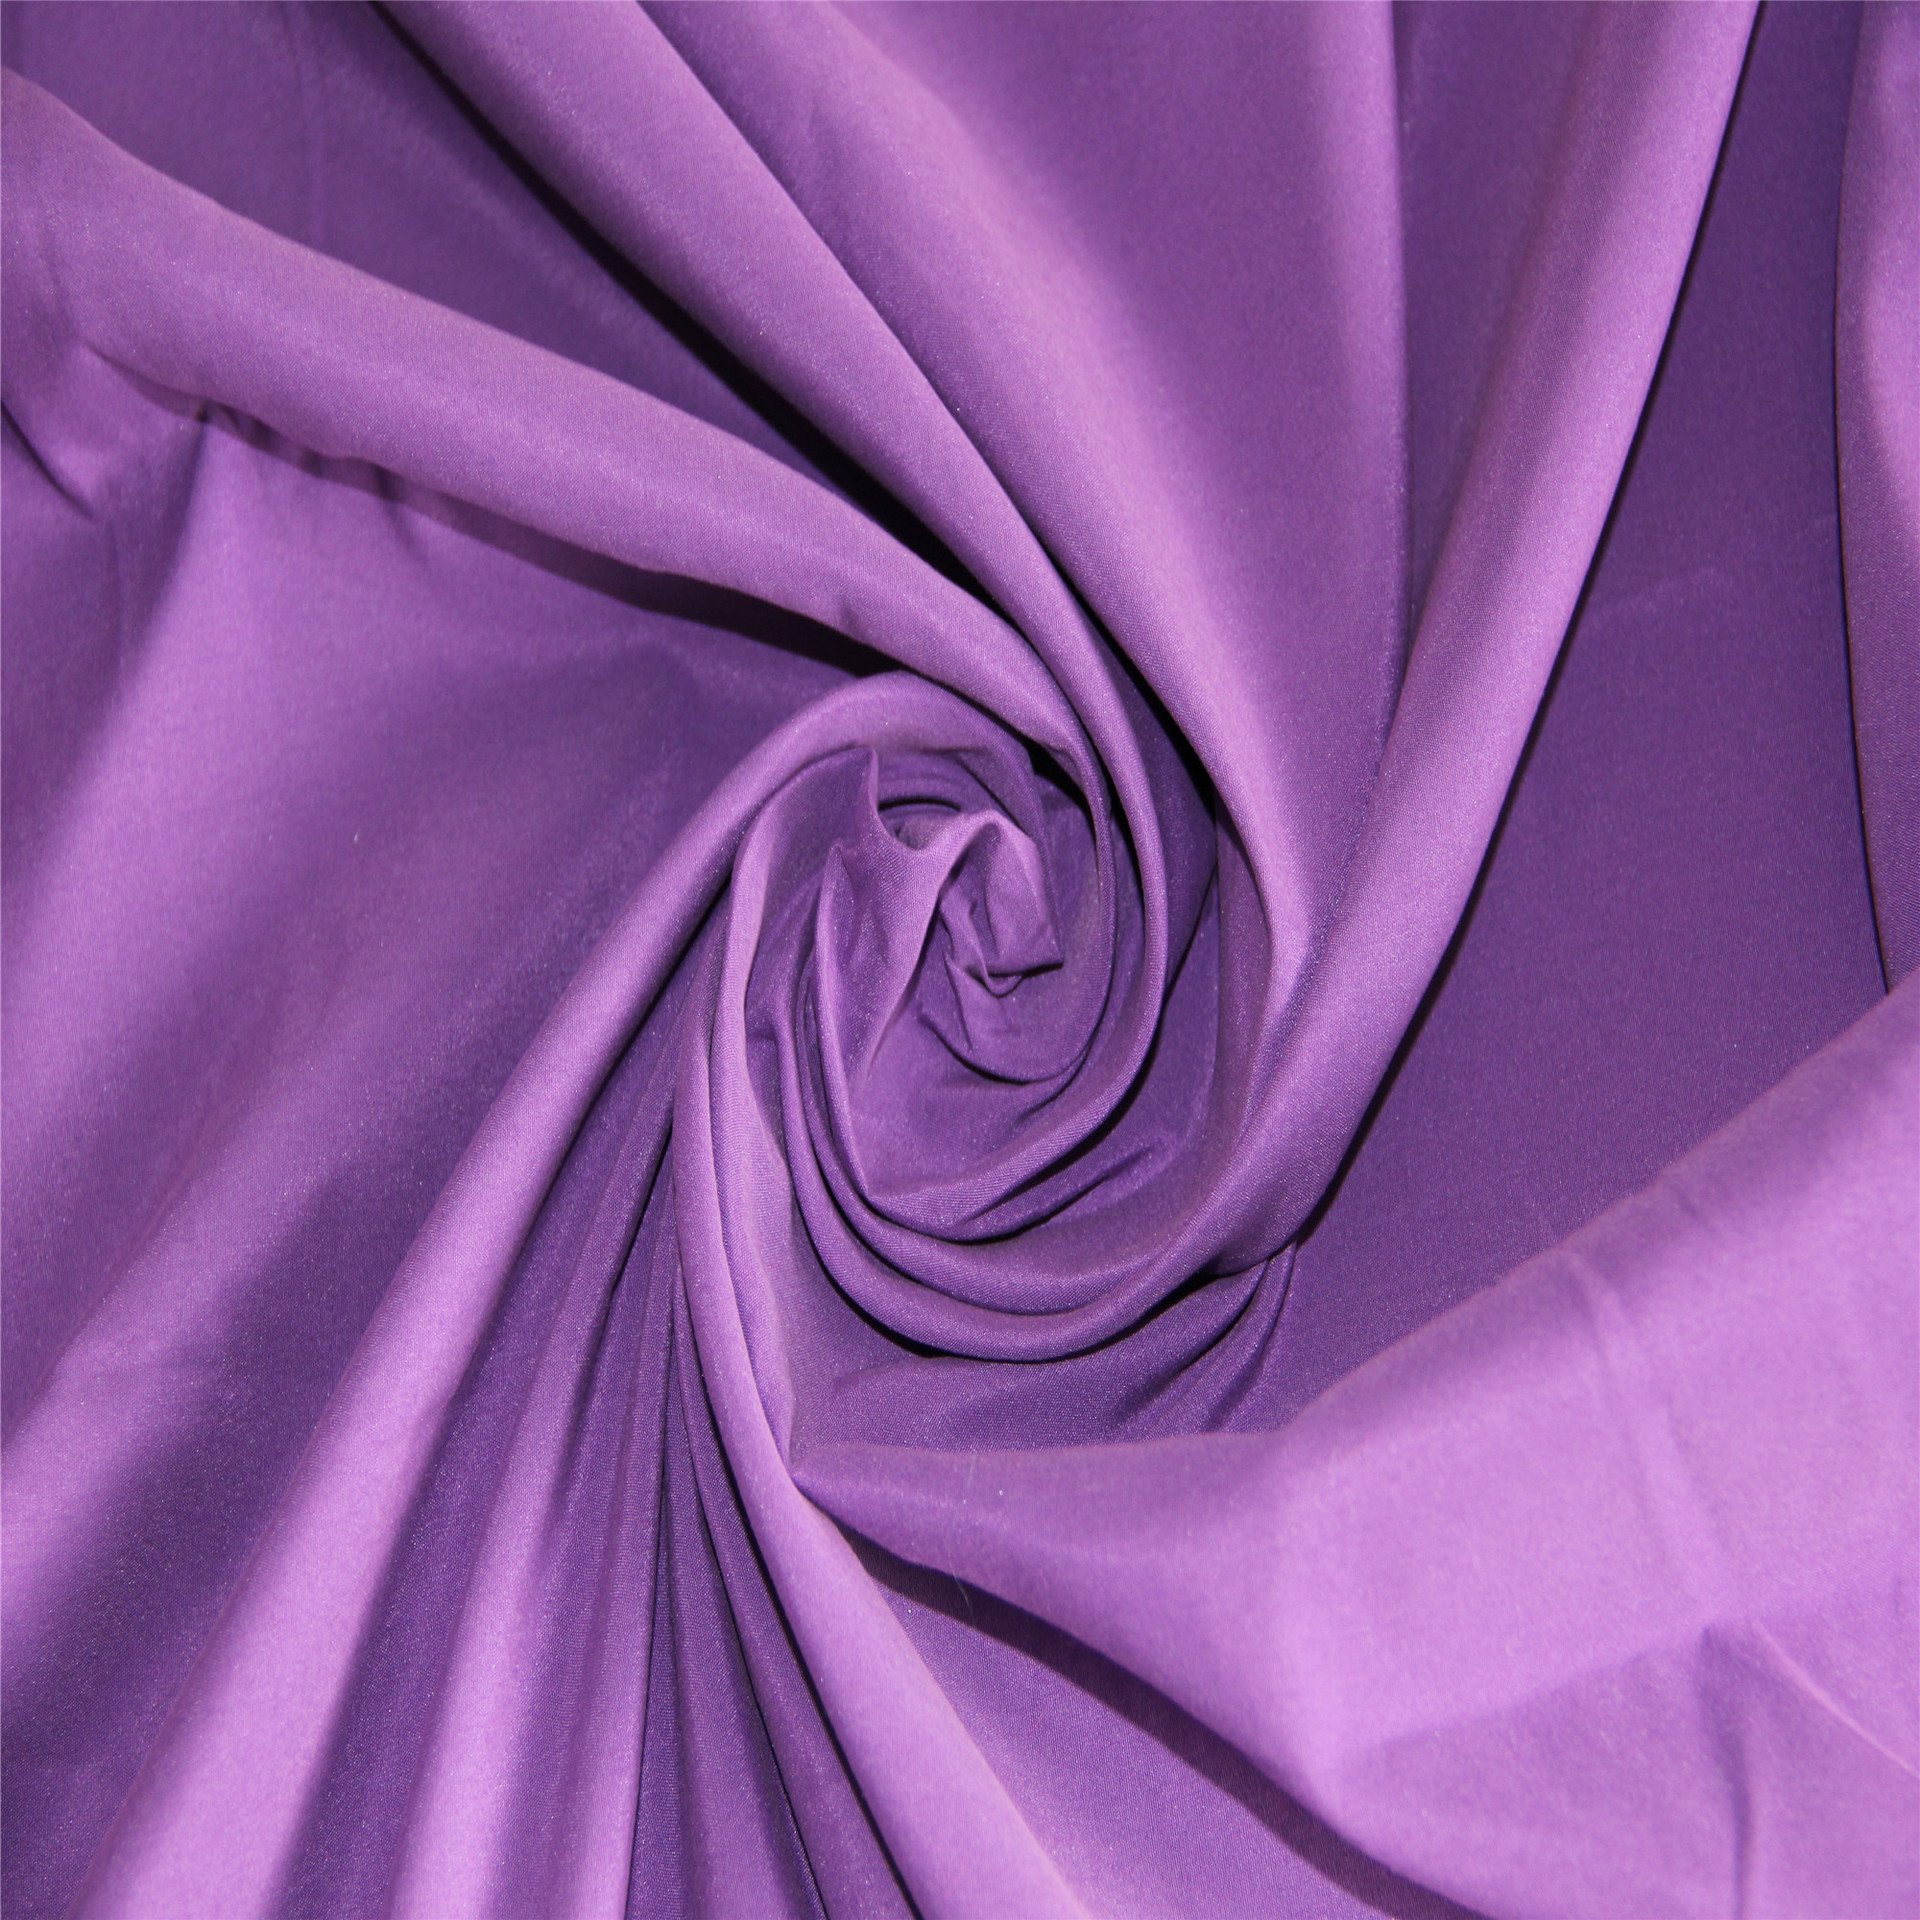 Leading sheep textile fabric factory direct sales of polyester peach skin fabric dyed with twill pea